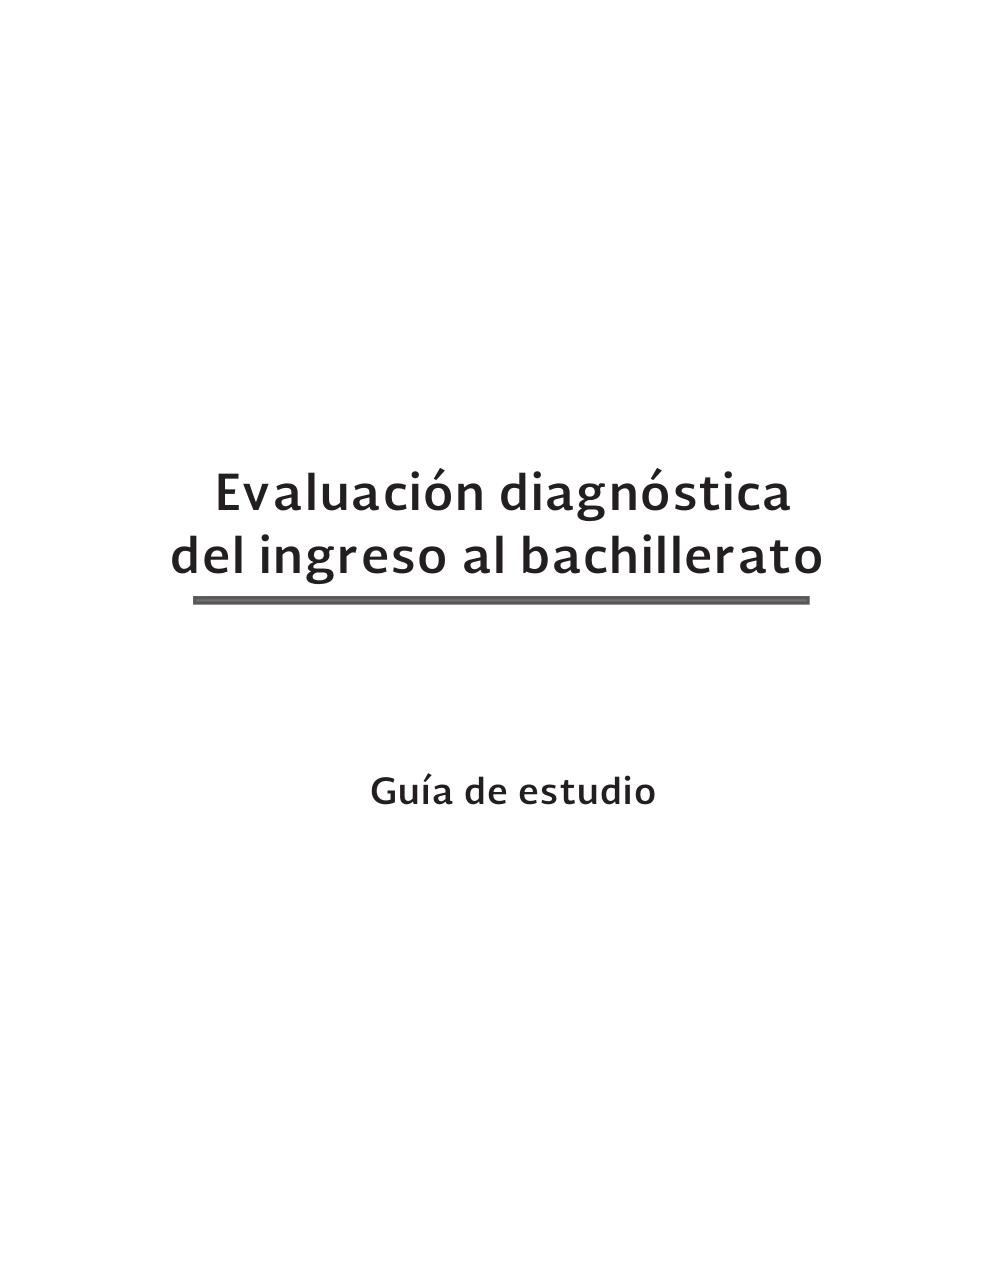 Preview of PDF document 1-guia-eval-diag-ingreso-2013-2014-backup.pdf